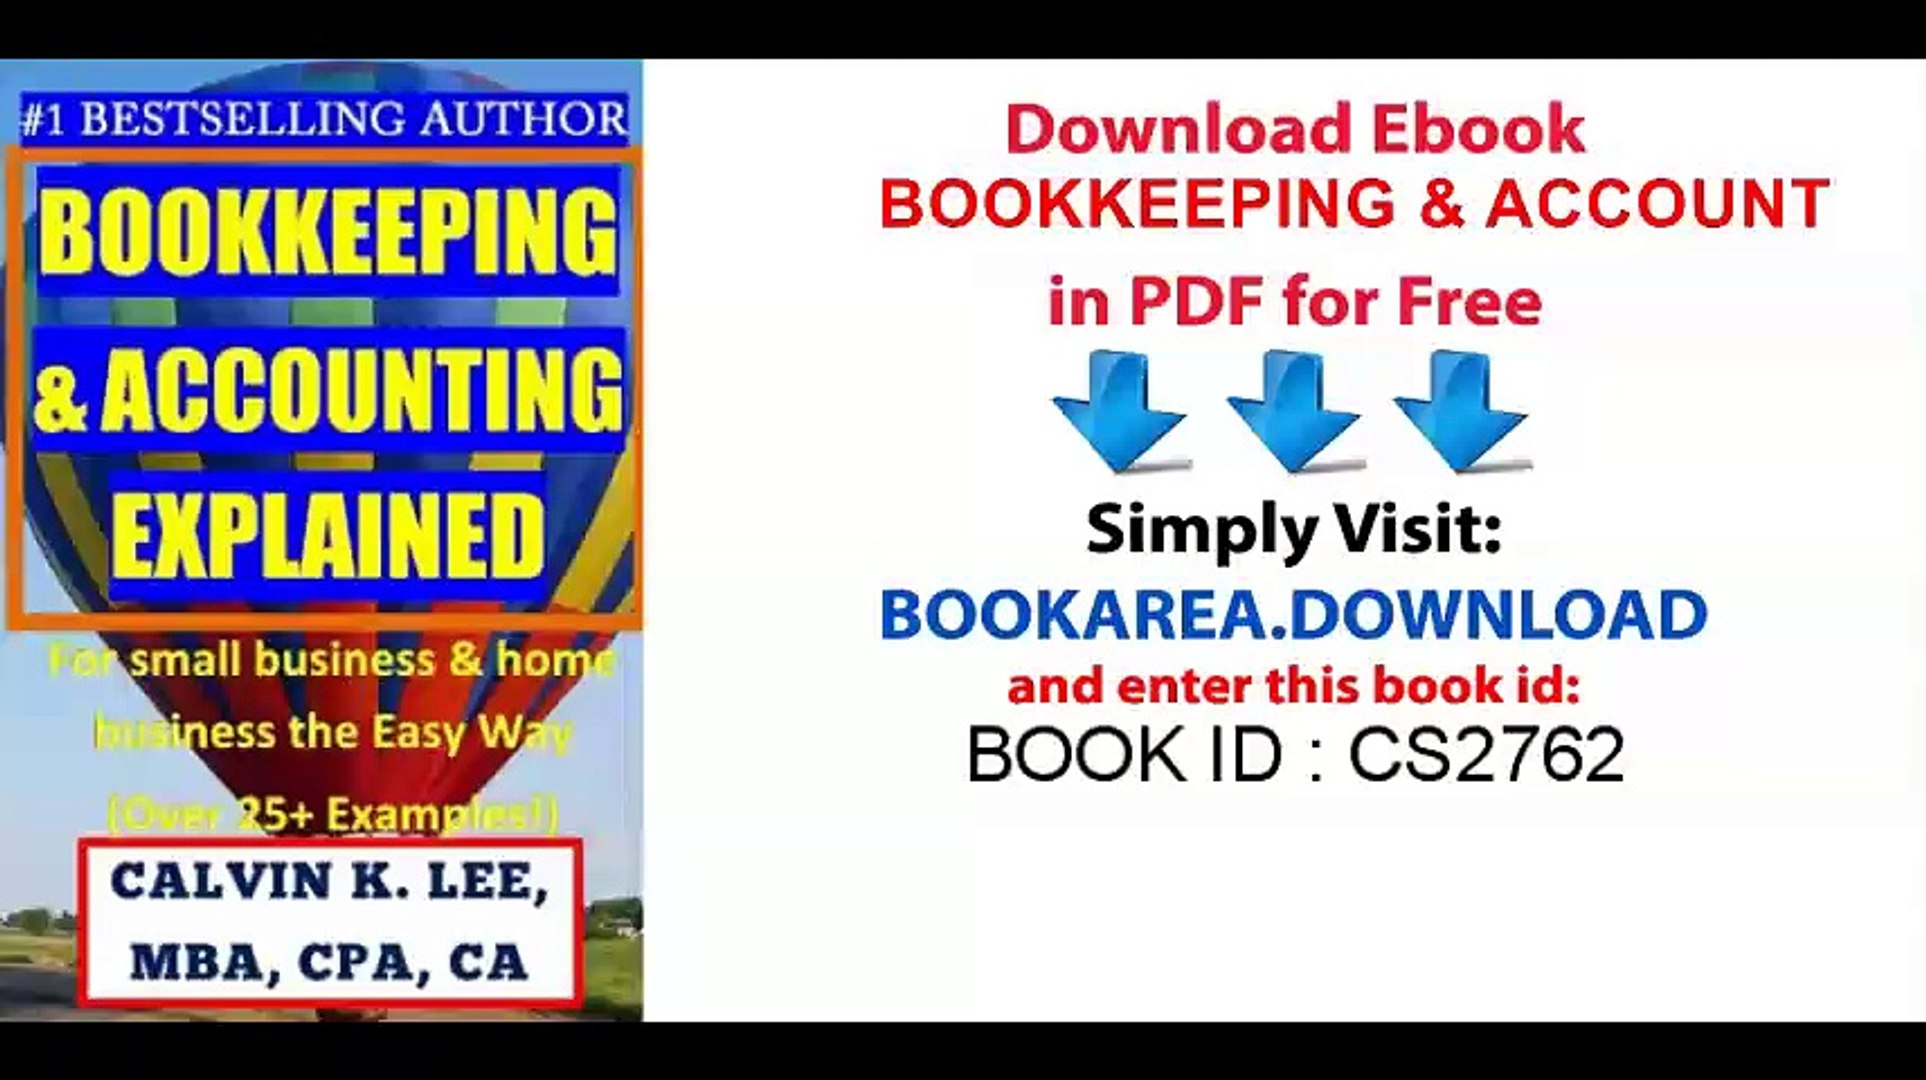 BOOKKEEPING & ACCOUNTING Explained_ For Small Business & Home Business the  Easy Way (Over 25+ Examples!) ((Bookkeeping, Accounting, Quickbooks, Simply  Accounting, Sage, ACCPAC))